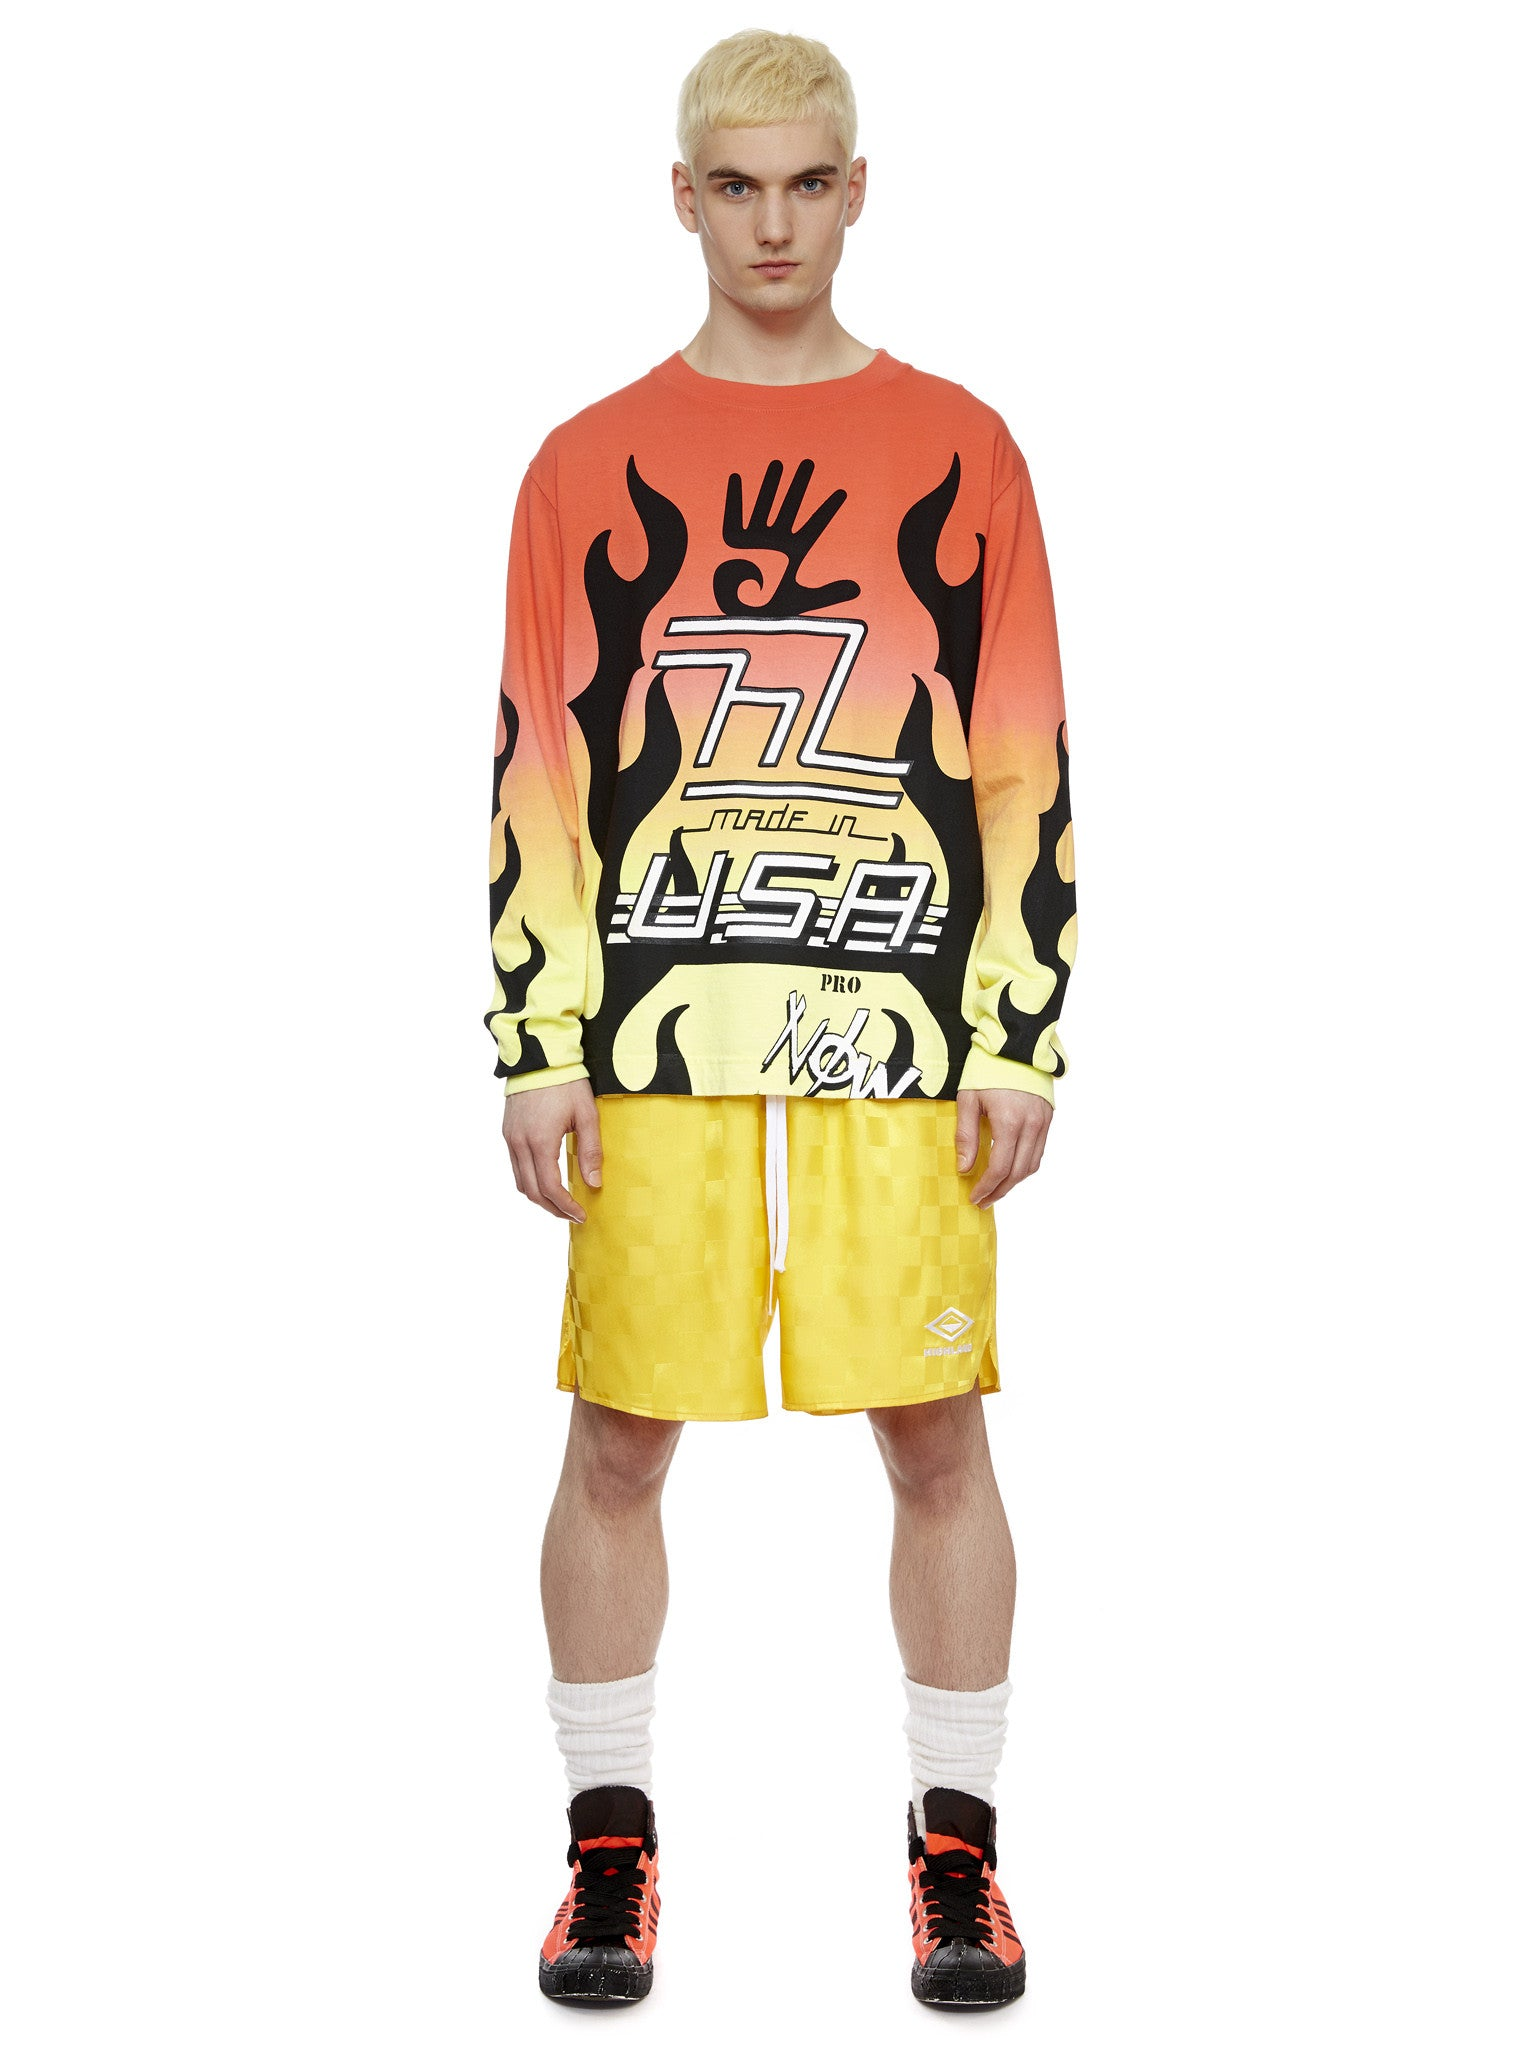 L/S Flame T-Shirt in Flame Gradient